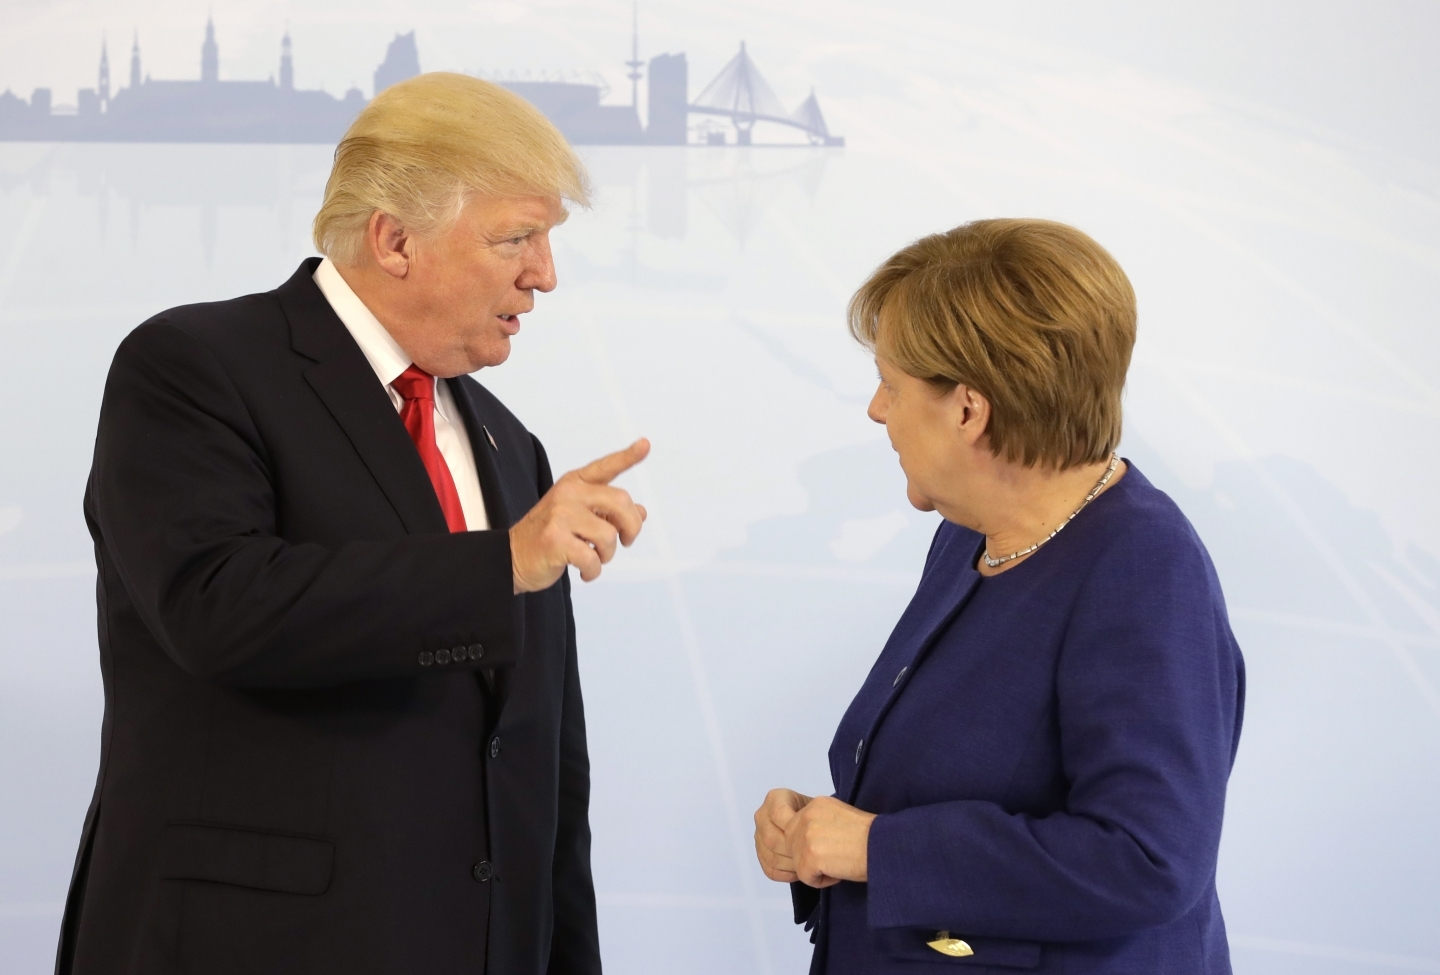 US President Donald Trump and German Chancellor Angela Merkel hold bilateral meeting at G20 summit in Hamburg (AP Photo/Matthias Schrader, pool)